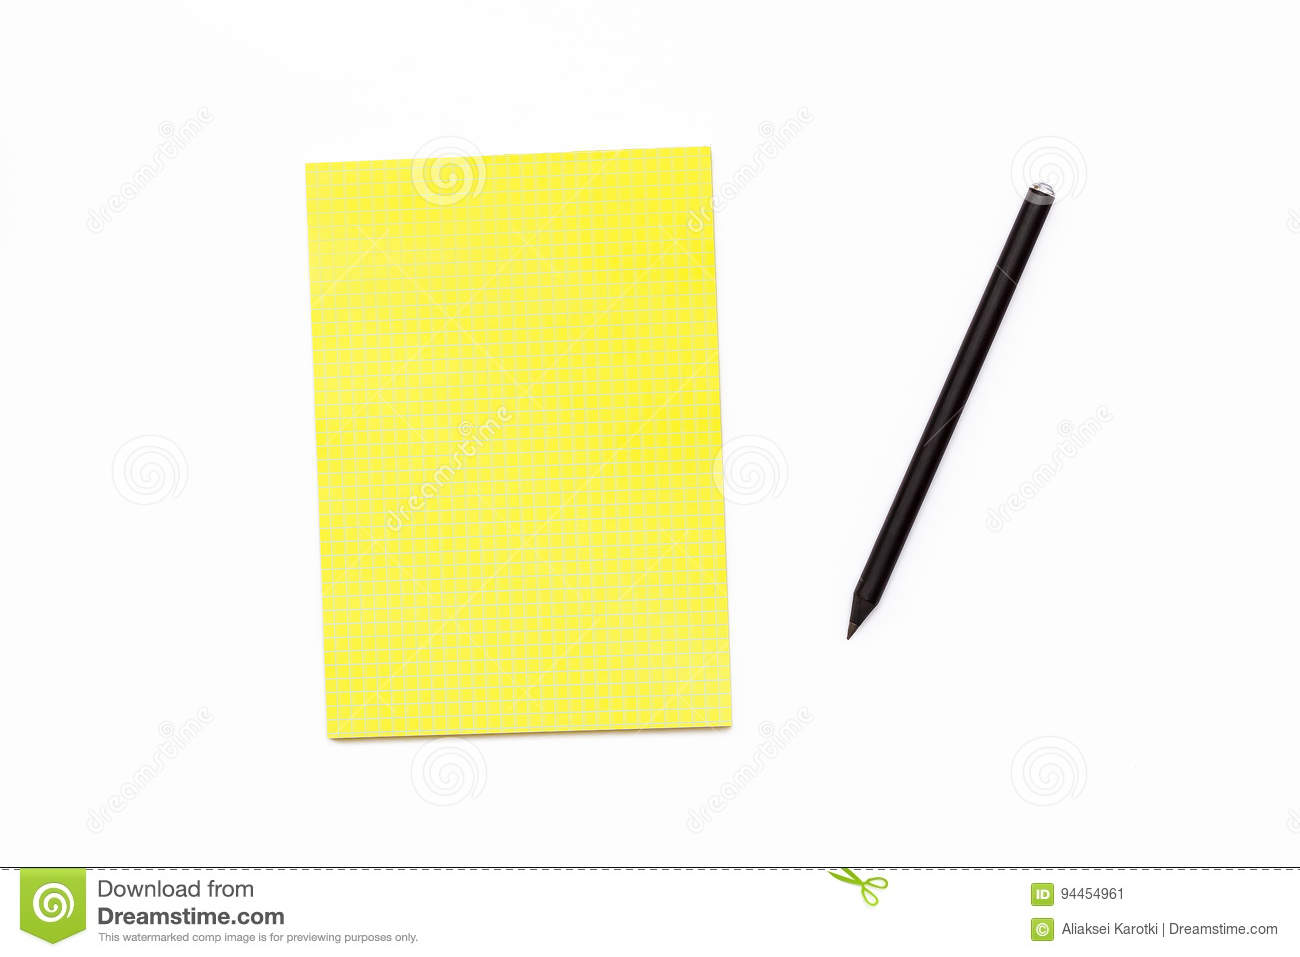 Black pencil and a yellow Notepad on a white background. Minimal business concept office Desk.